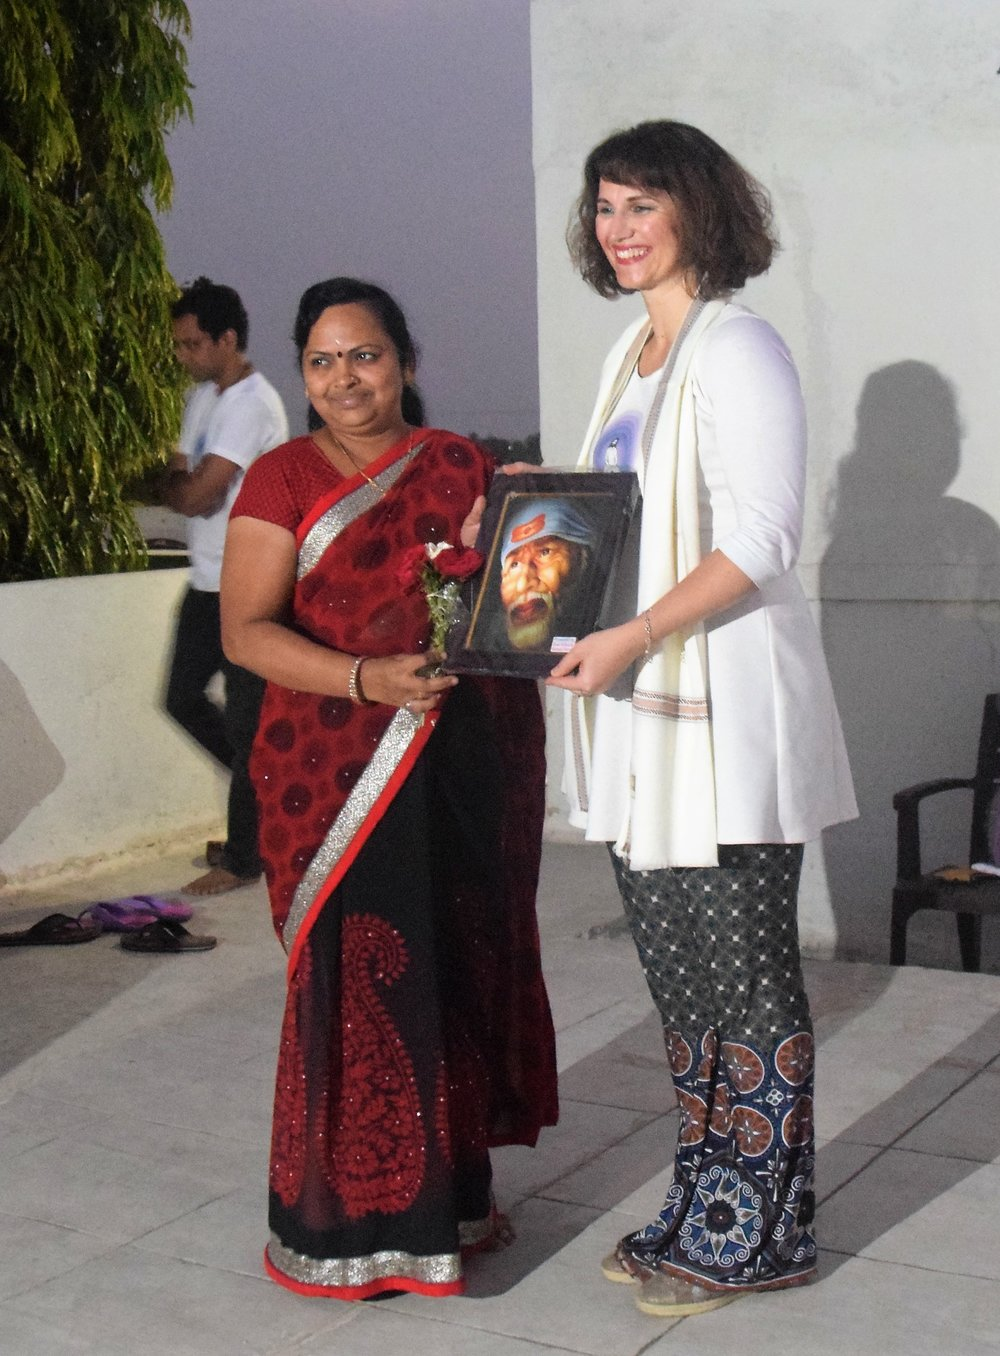 Devi honored with Sai picture and shawl.jpg